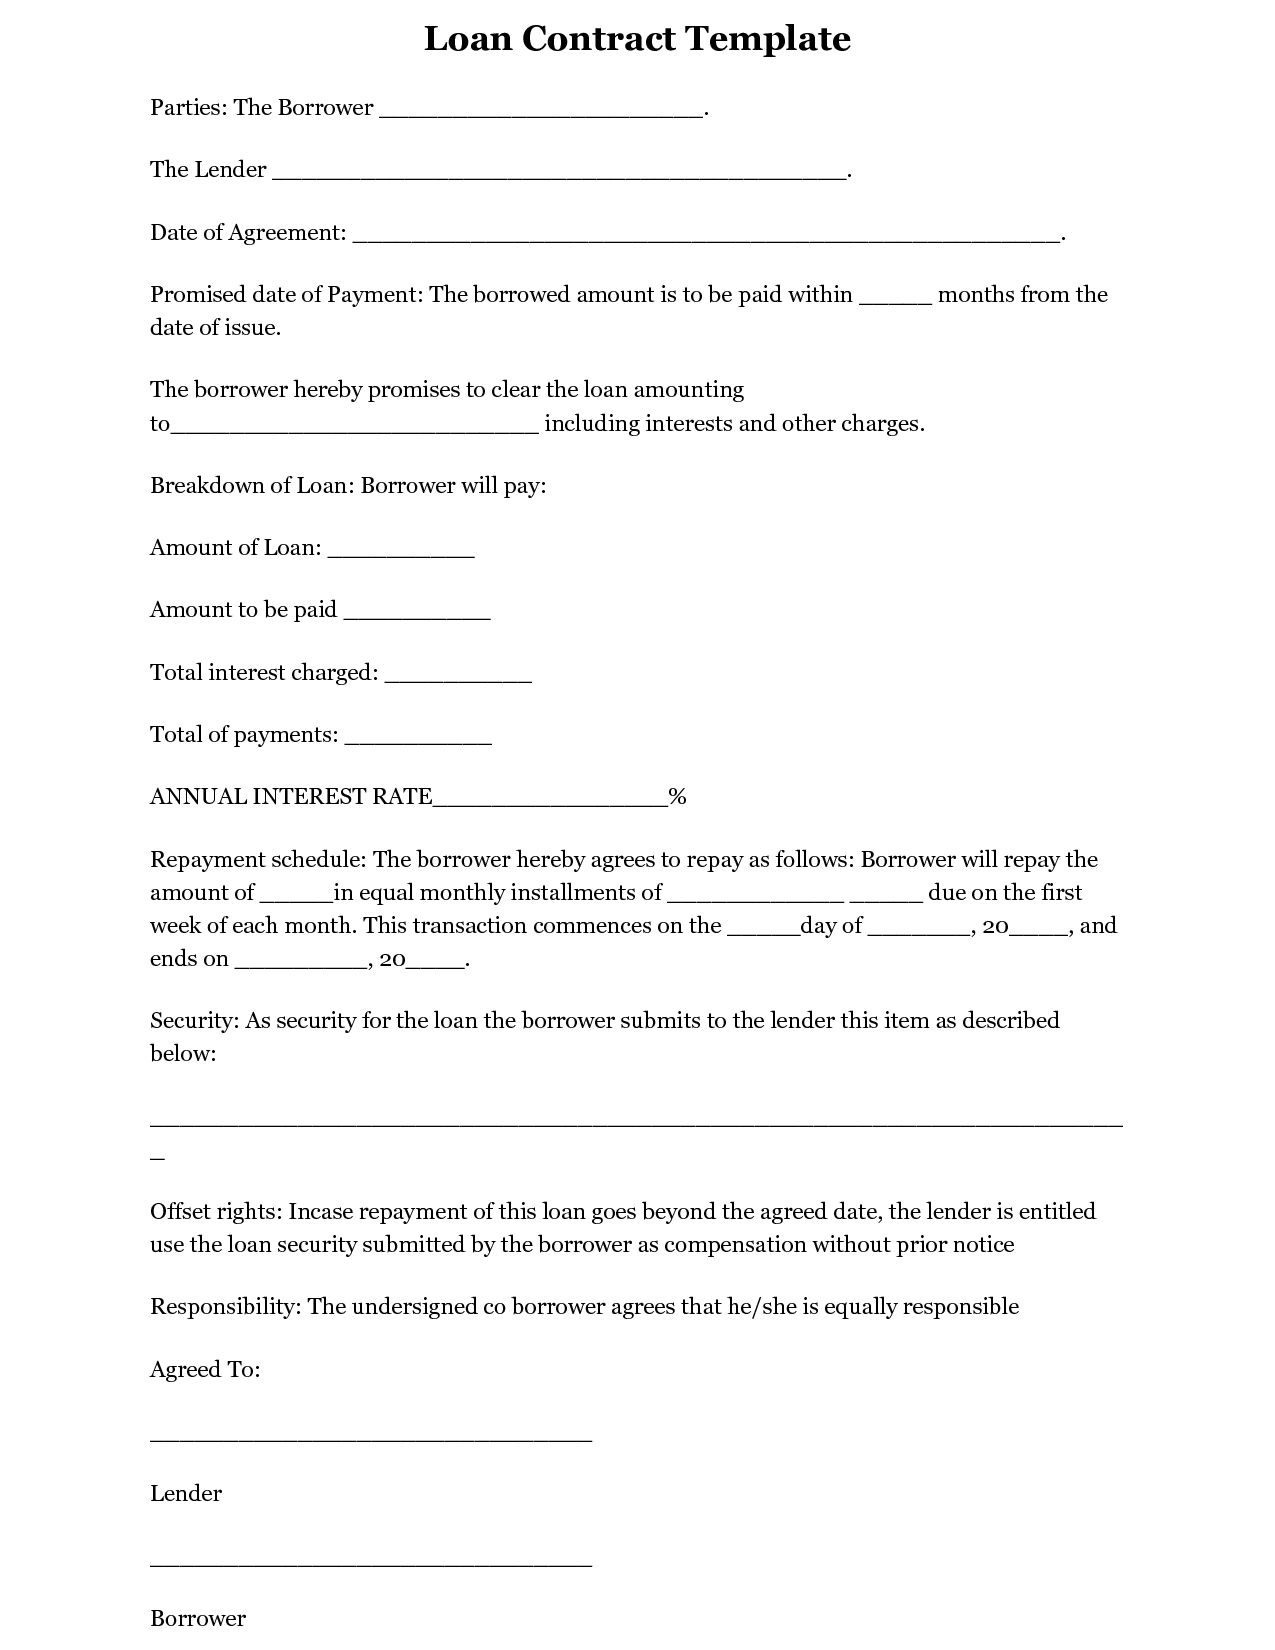 Loan Agreement Templates, Resume template free